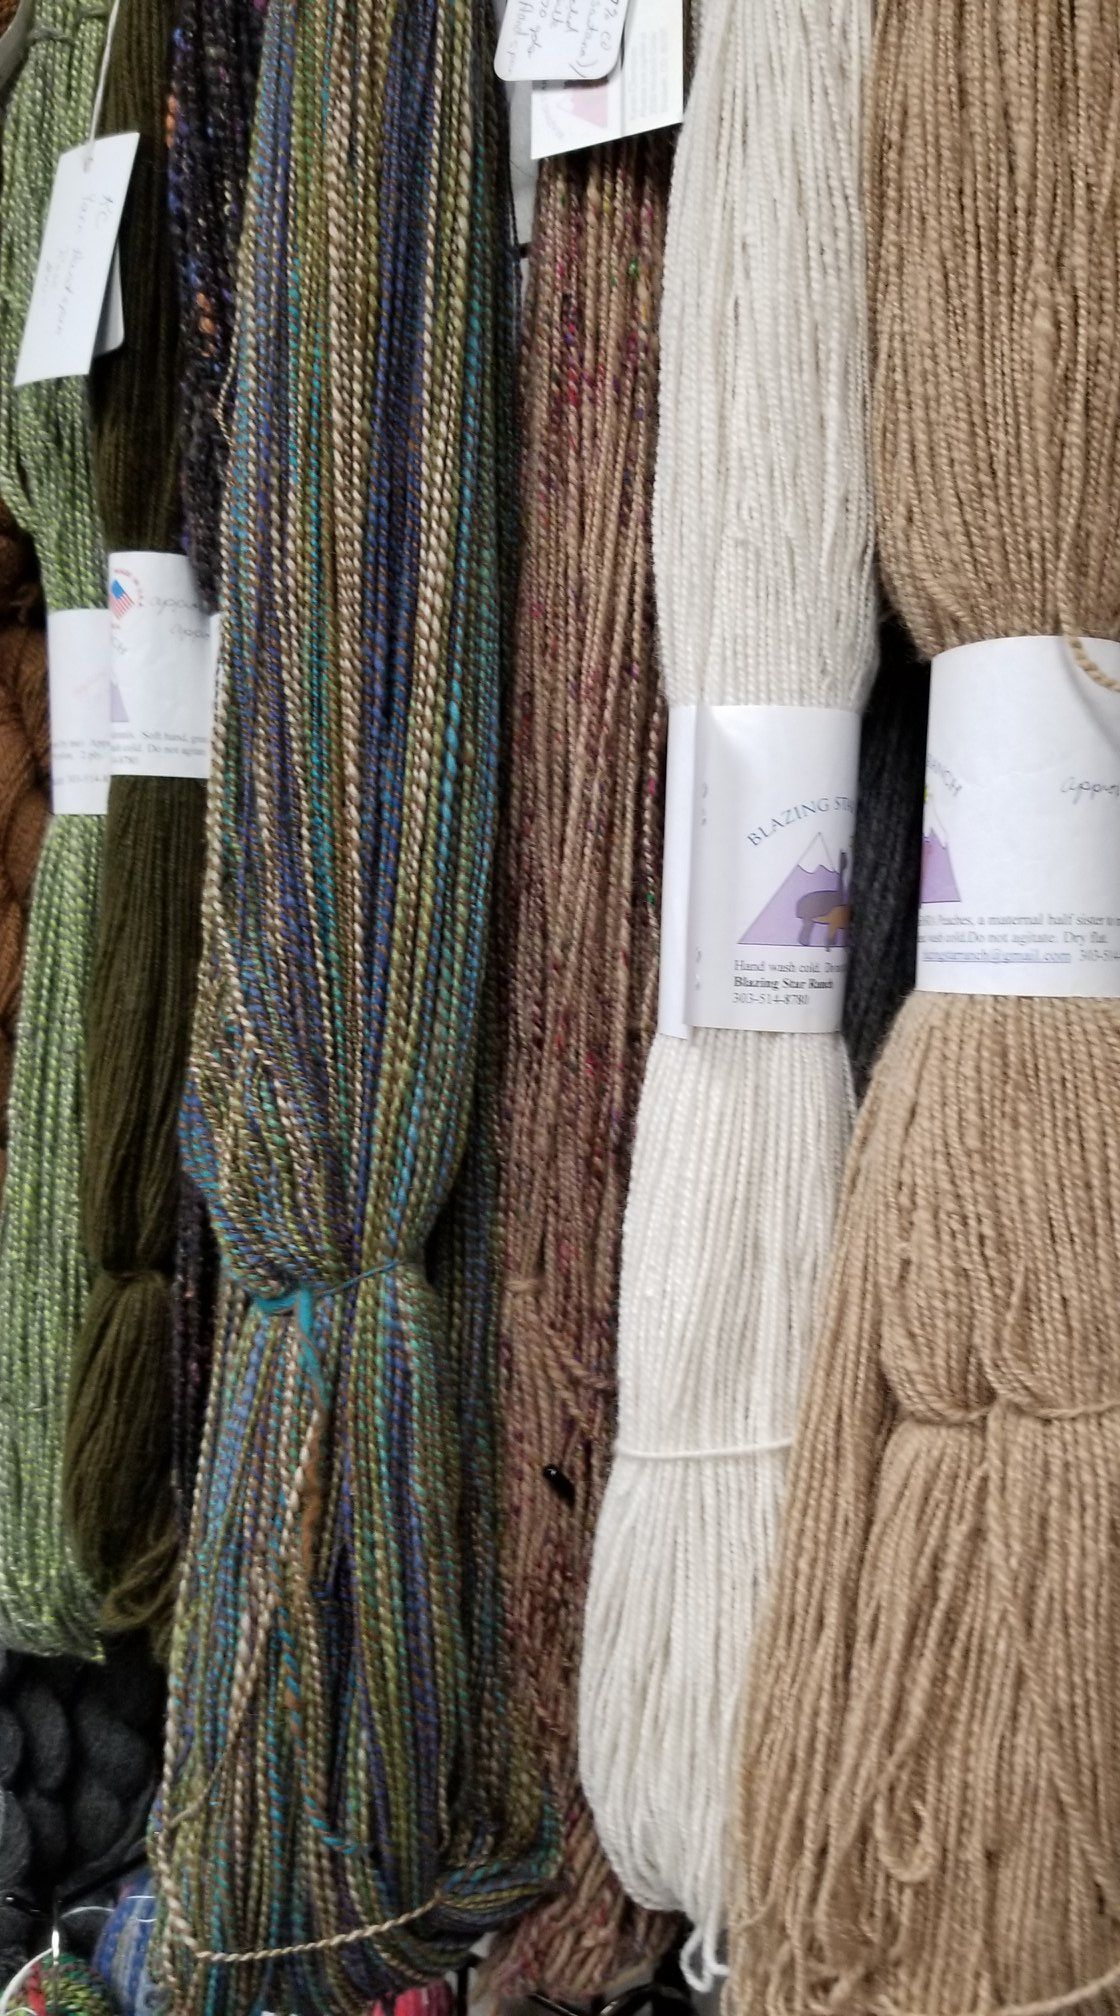 July Vendor Spotlight: Blazing Star Ranch specializes in natural fibers, including our own home grown alpaca. We feature Indie dyers, as well. Catering to spinners and weavers, as well as knitters and crocheters, we have a wide variety of roving and batts, both natural and dyed. Blazing Star Ranch is a dealer for 6 brands of Spinning Wheels and Looms (4 of our brands have looms). Going LIVE Saturday July 25 at 4:00 pm EST on our FB group.